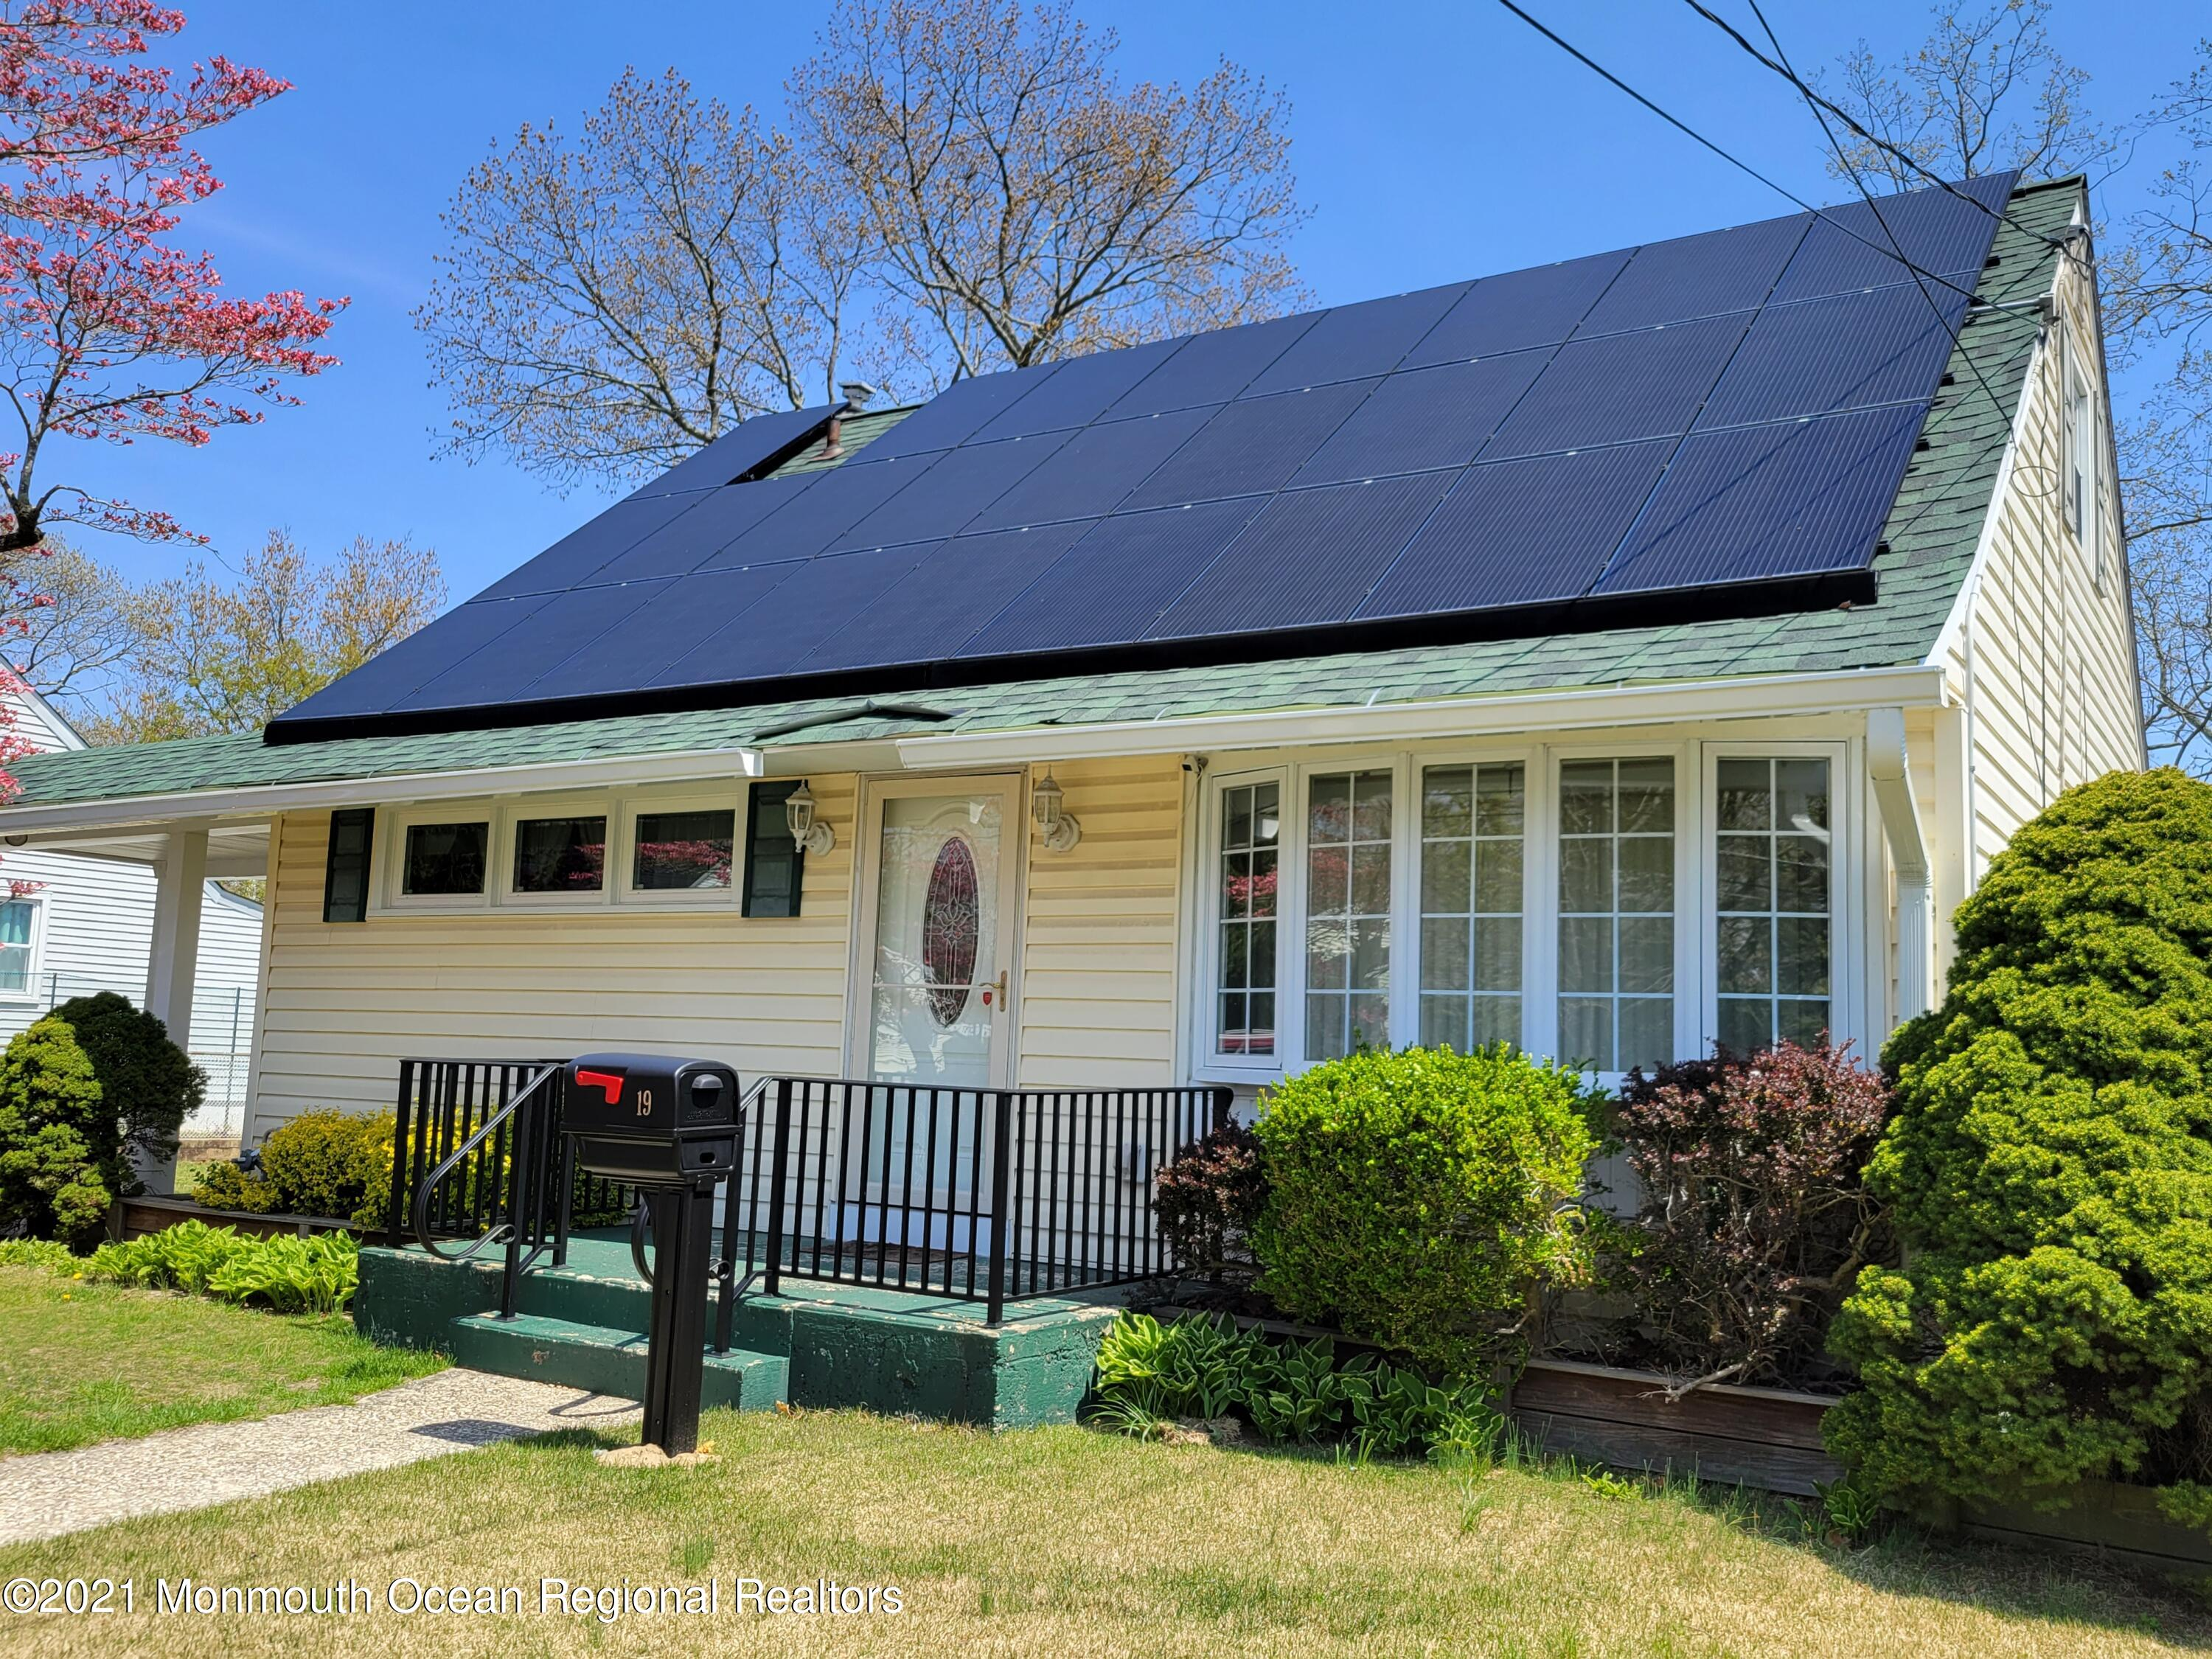 19 Harding Drive, Brick, New Jersey 08724, 4 Bedrooms Bedrooms, ,1 BathroomBathrooms,Single Family,For Sale,19 Harding Drive,1,22112453